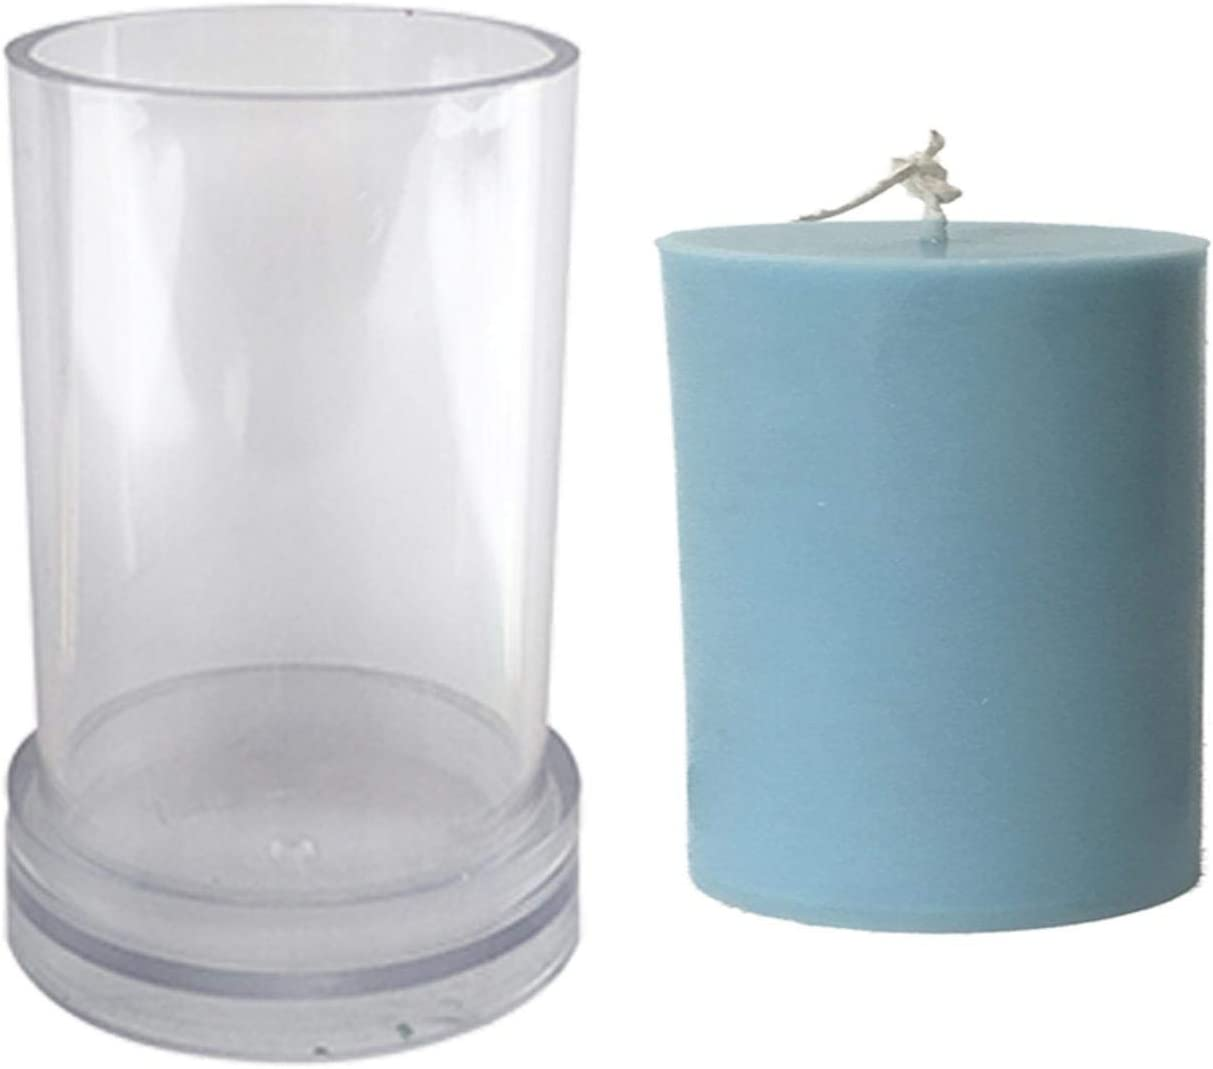 Find beautiful Cylinder Candle outlet Plastic Molds Cand Trust Shape